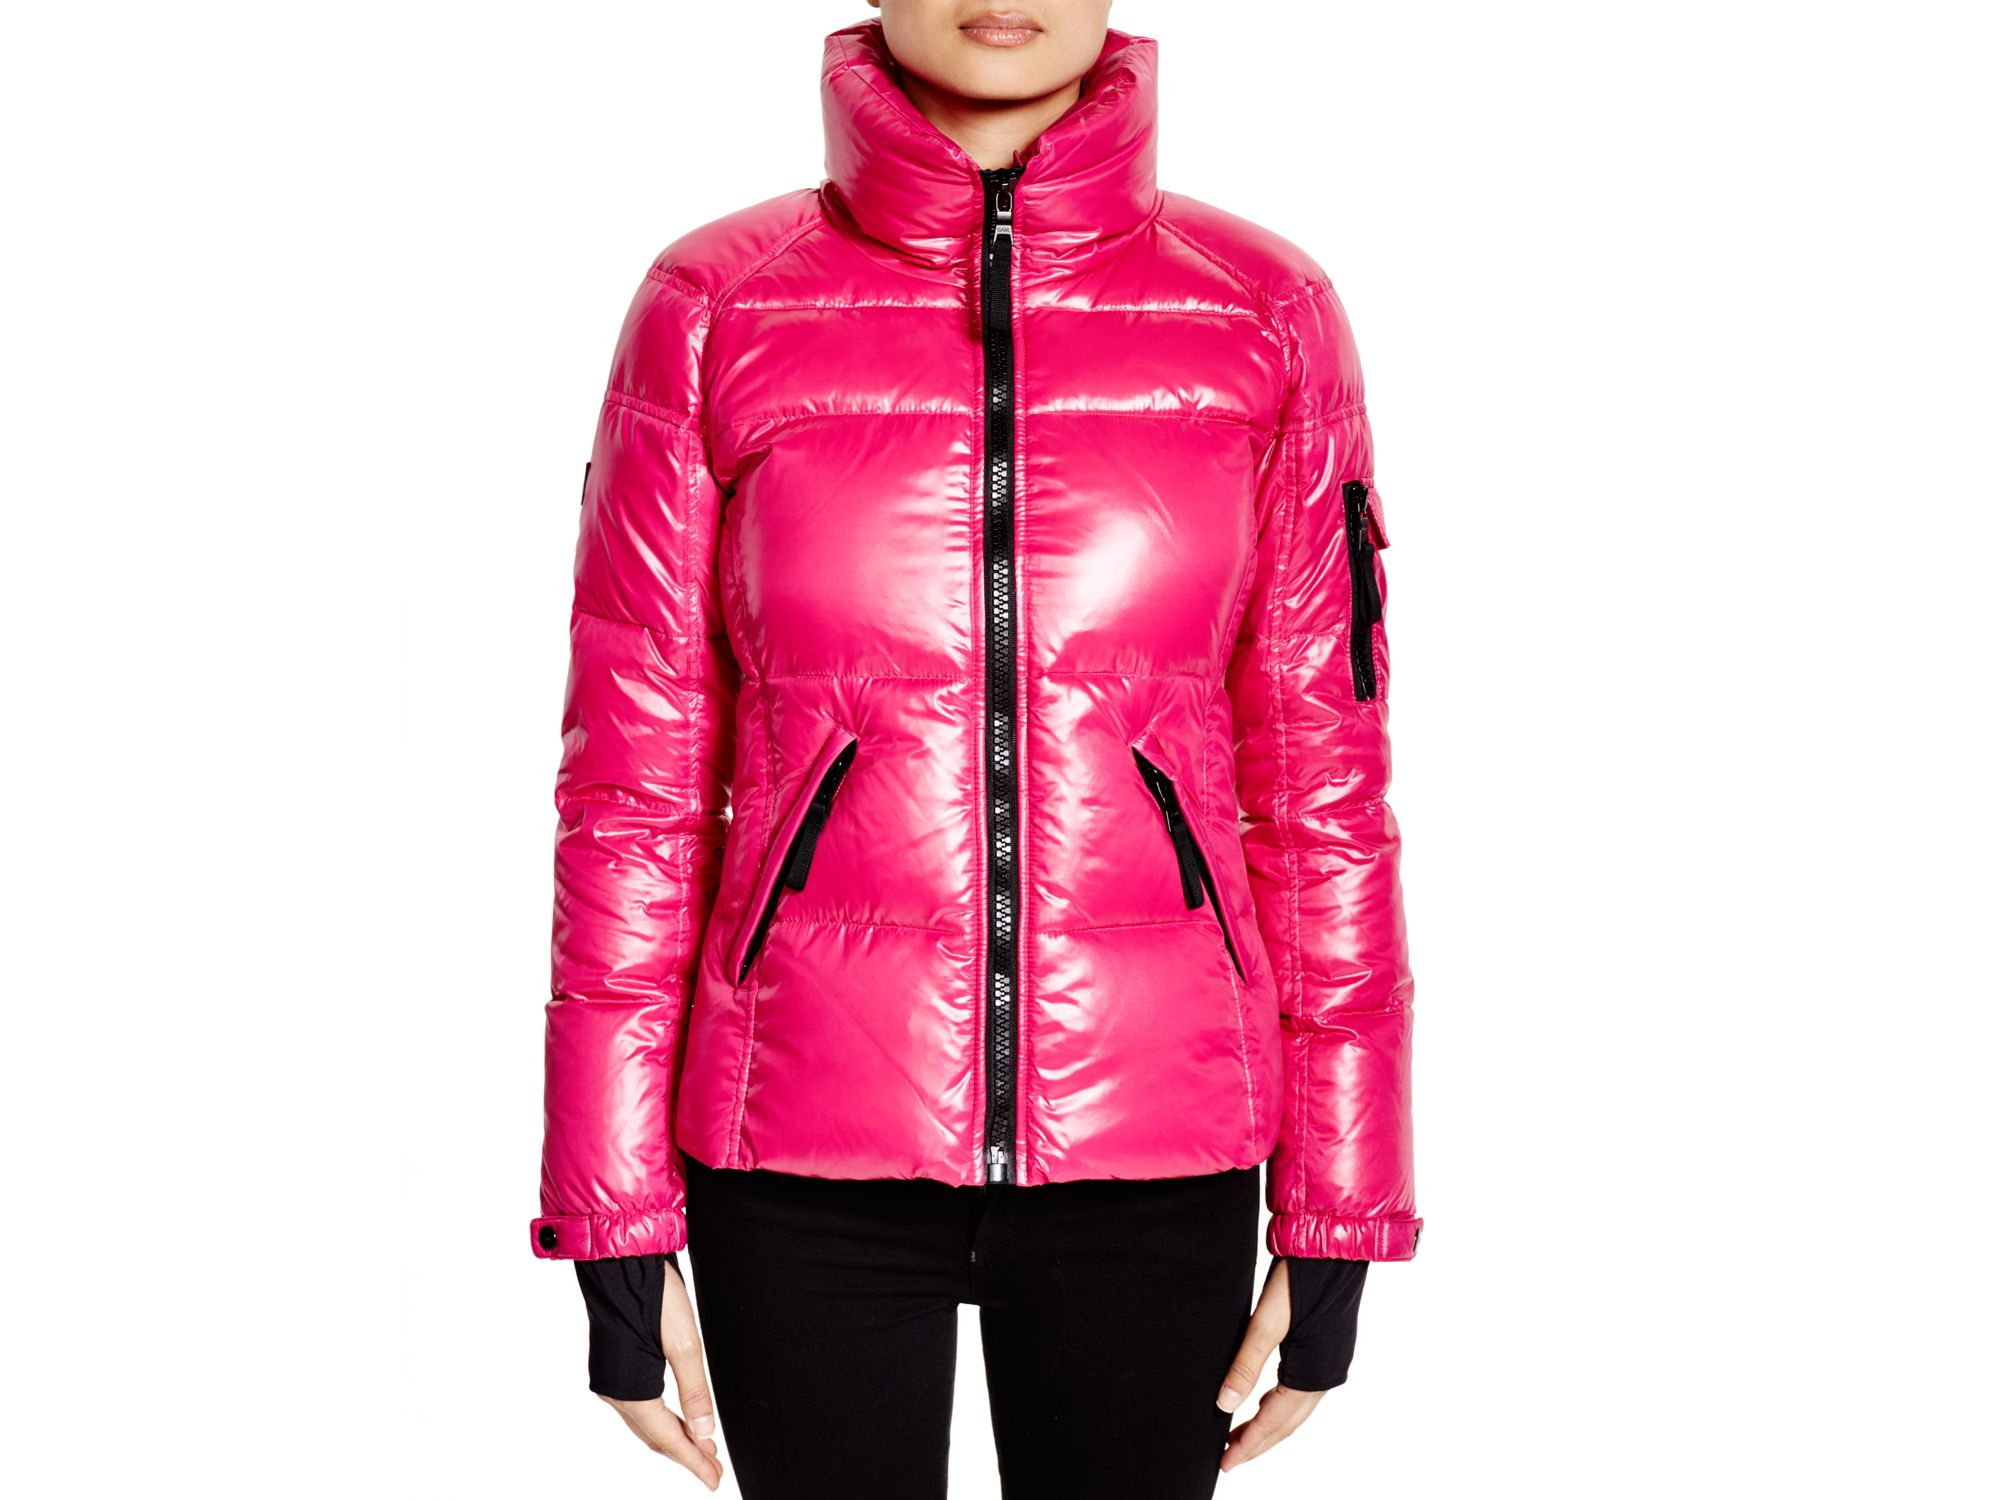 2a040608e Sam. Freestyle Down Jacket in Pink - Lyst